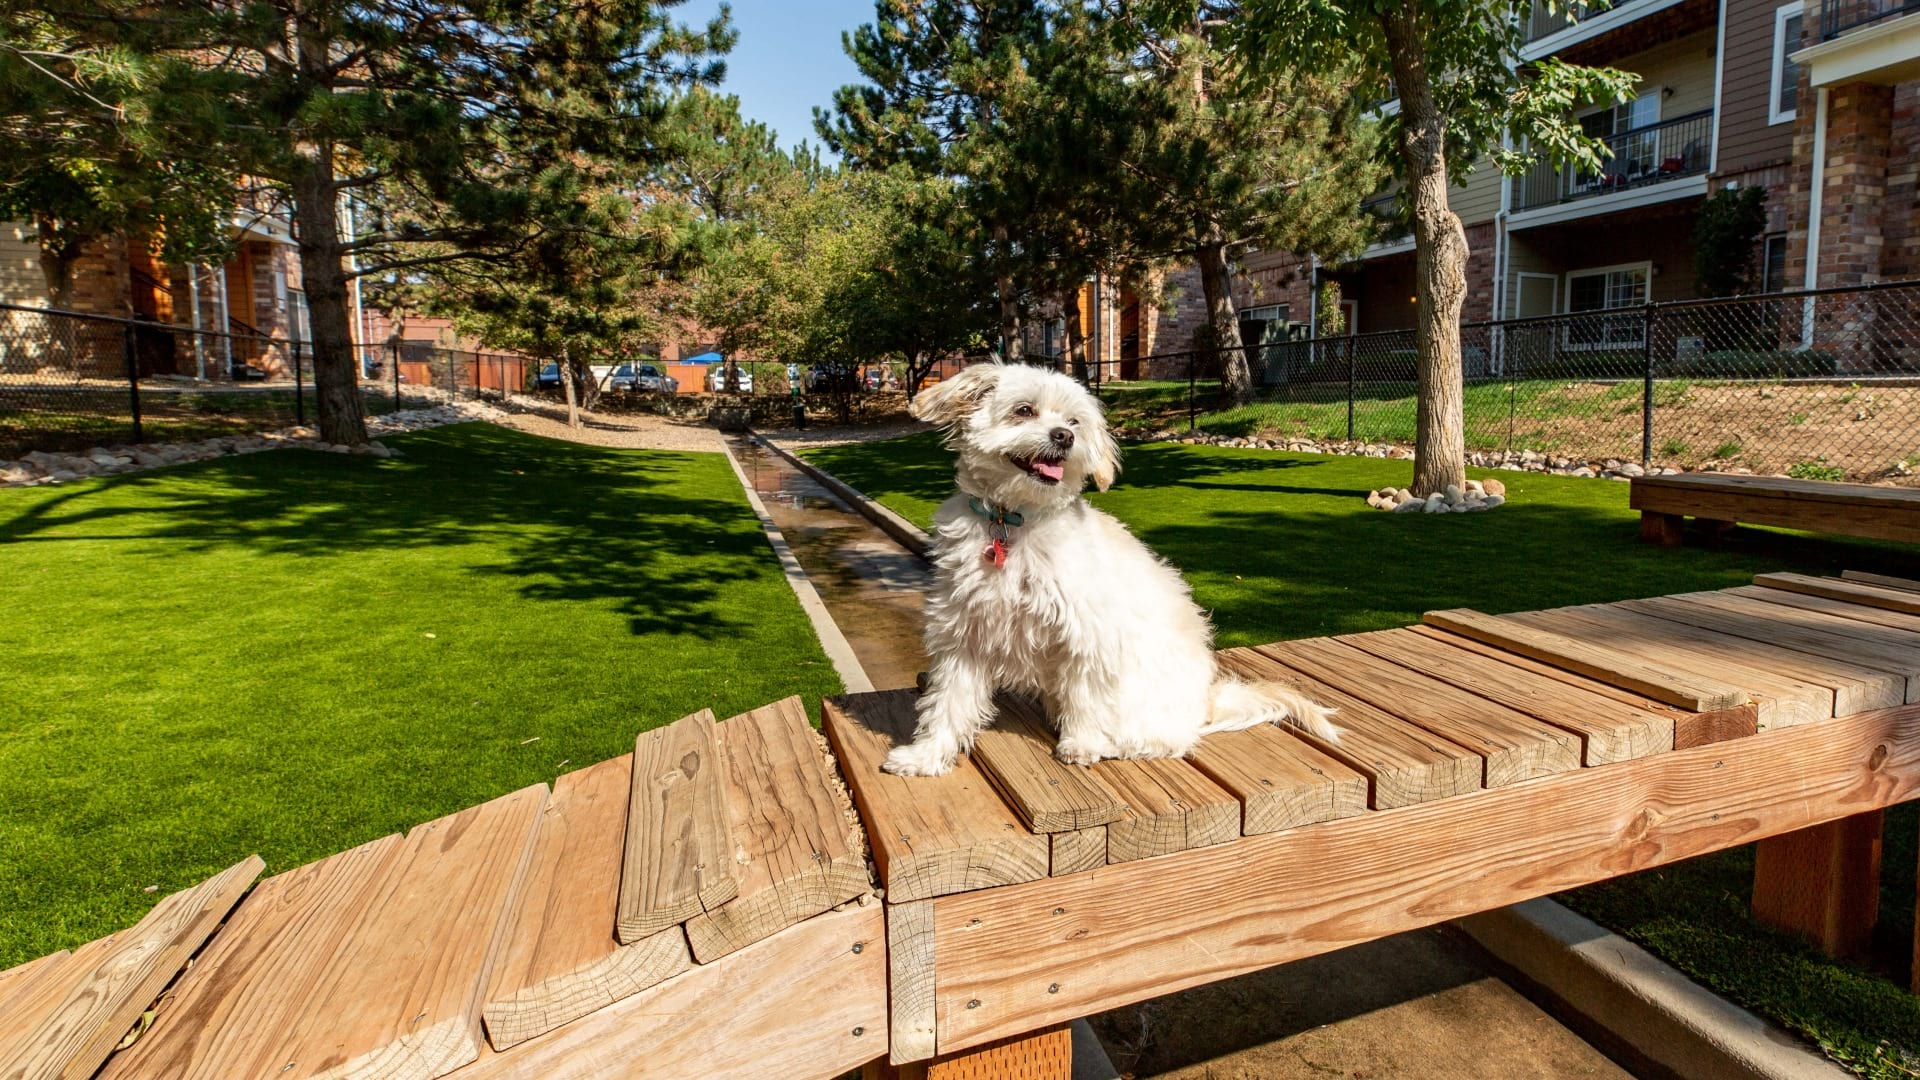 A dog enjoying the dog park at our pet-friendly apartments near Cherry Creek